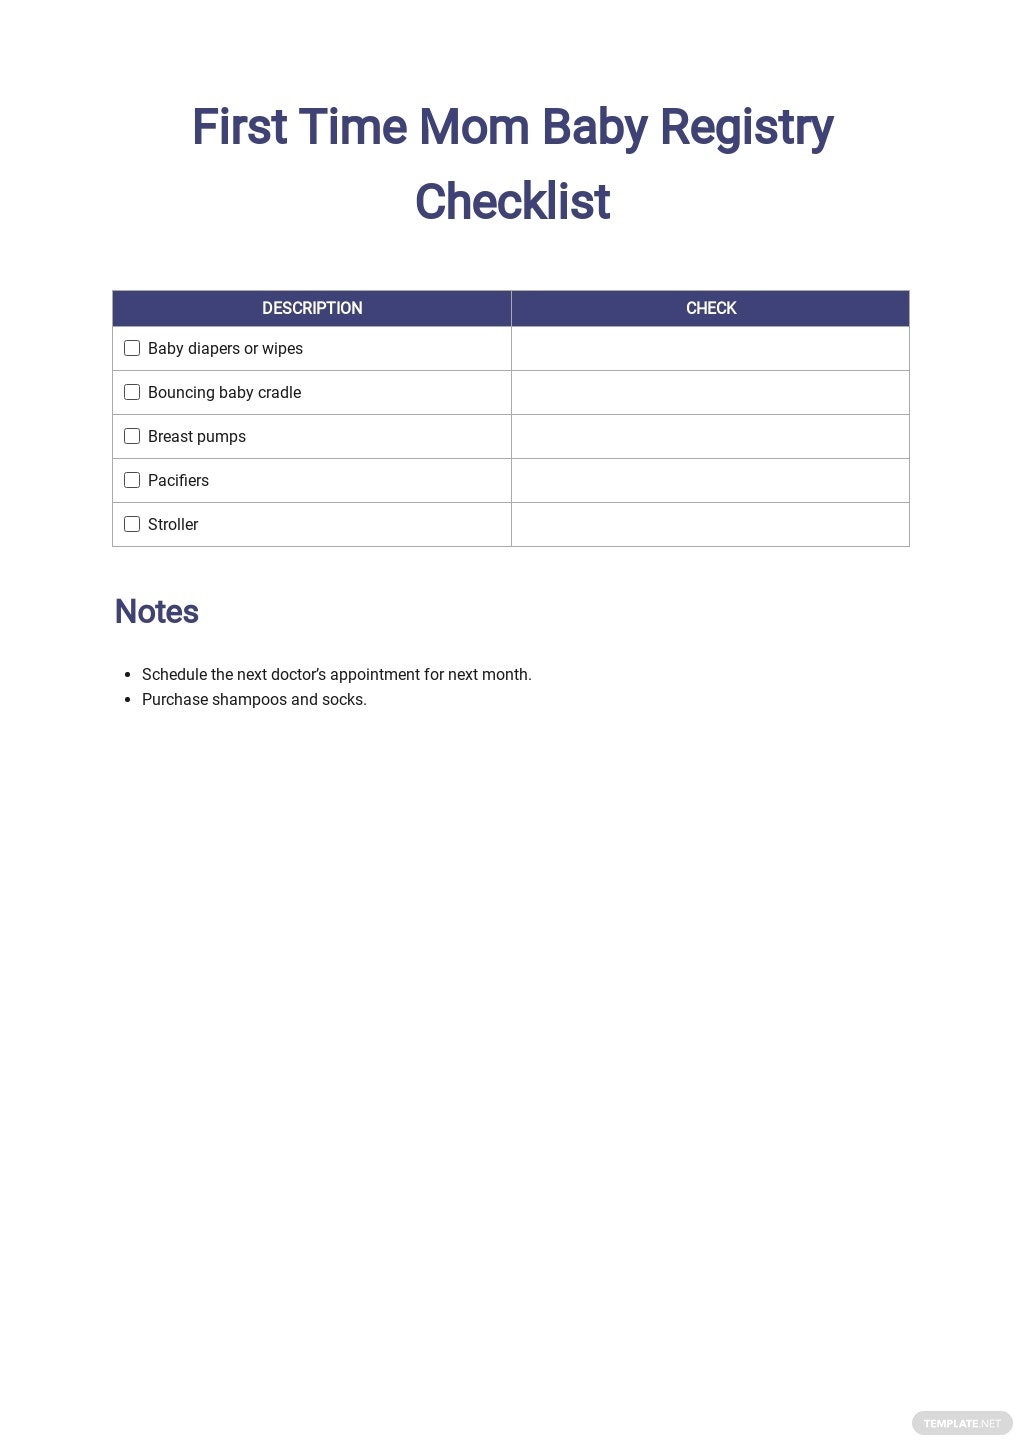 First Time Mom Baby Registry Checklist Template.jpe